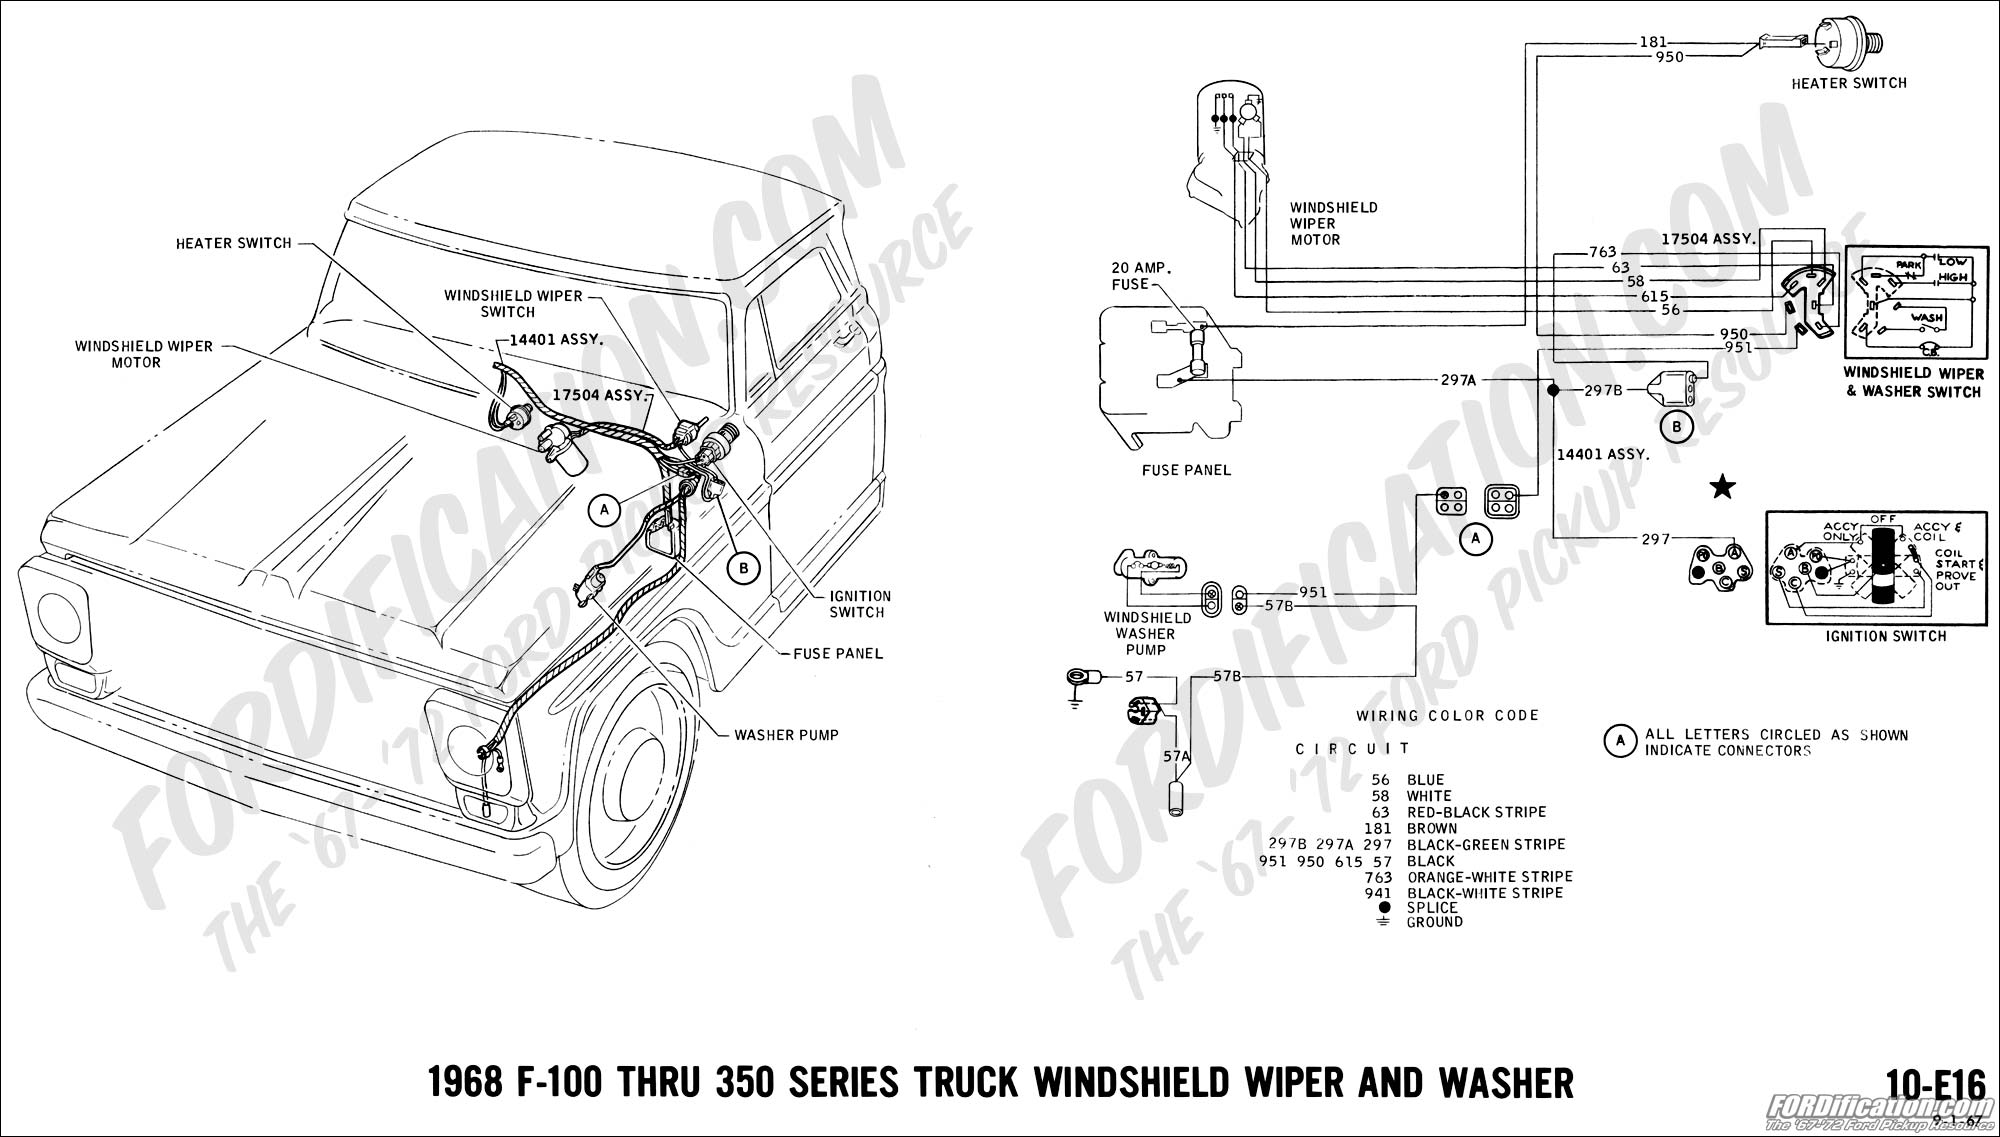 Wiring Diagram For 1963 Ford Econoline Dimmer Switch 52 1994 F 250 68 18 Truck Technical Drawings And Schematics Section H